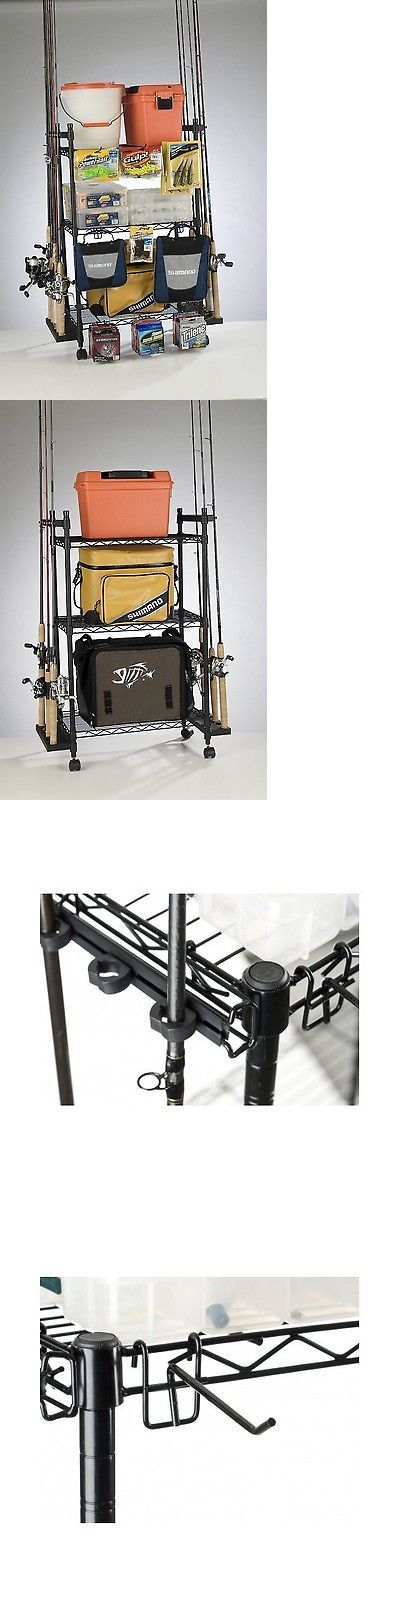 Rod Cases Tubes and Racks 81473: Fishing Rod Rack Pole Holder Reel Tackle Box Storage Shelves Garage Cart Wheels BUY IT NOW ONLY: $69.73